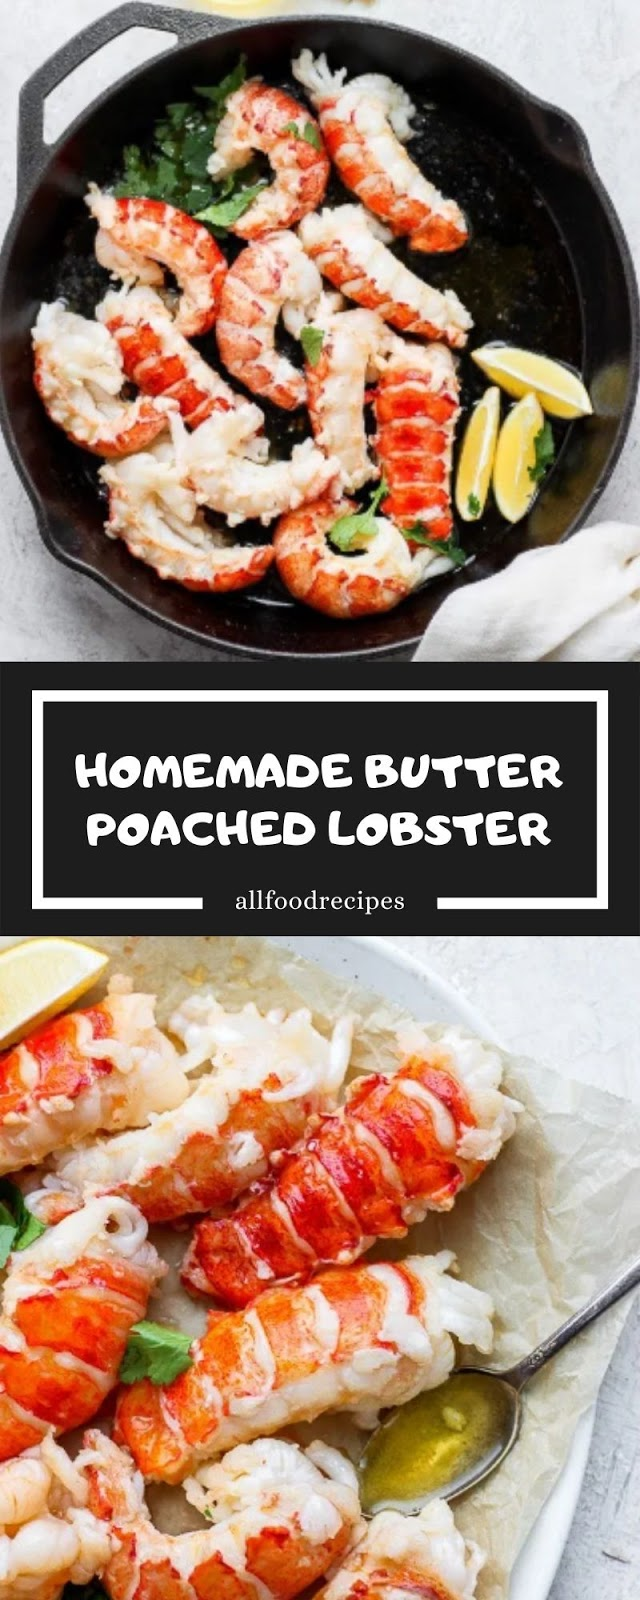 HOMEMADE BUTTER POACHED LOBSTER